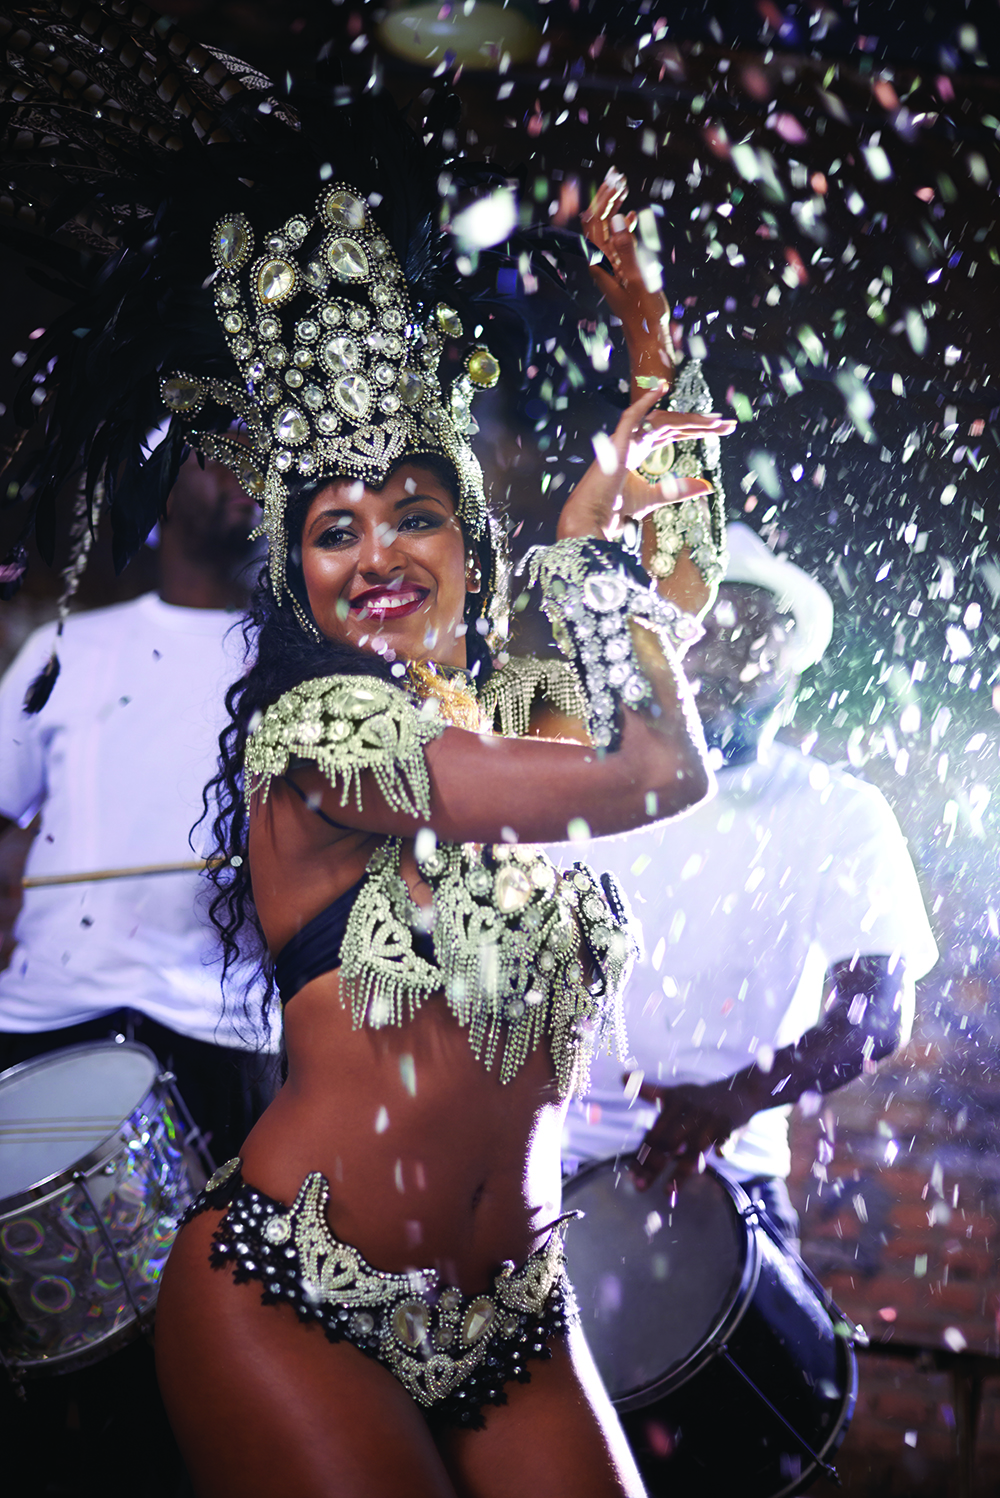 A beautiful samba dancer performing in a carnival with her band